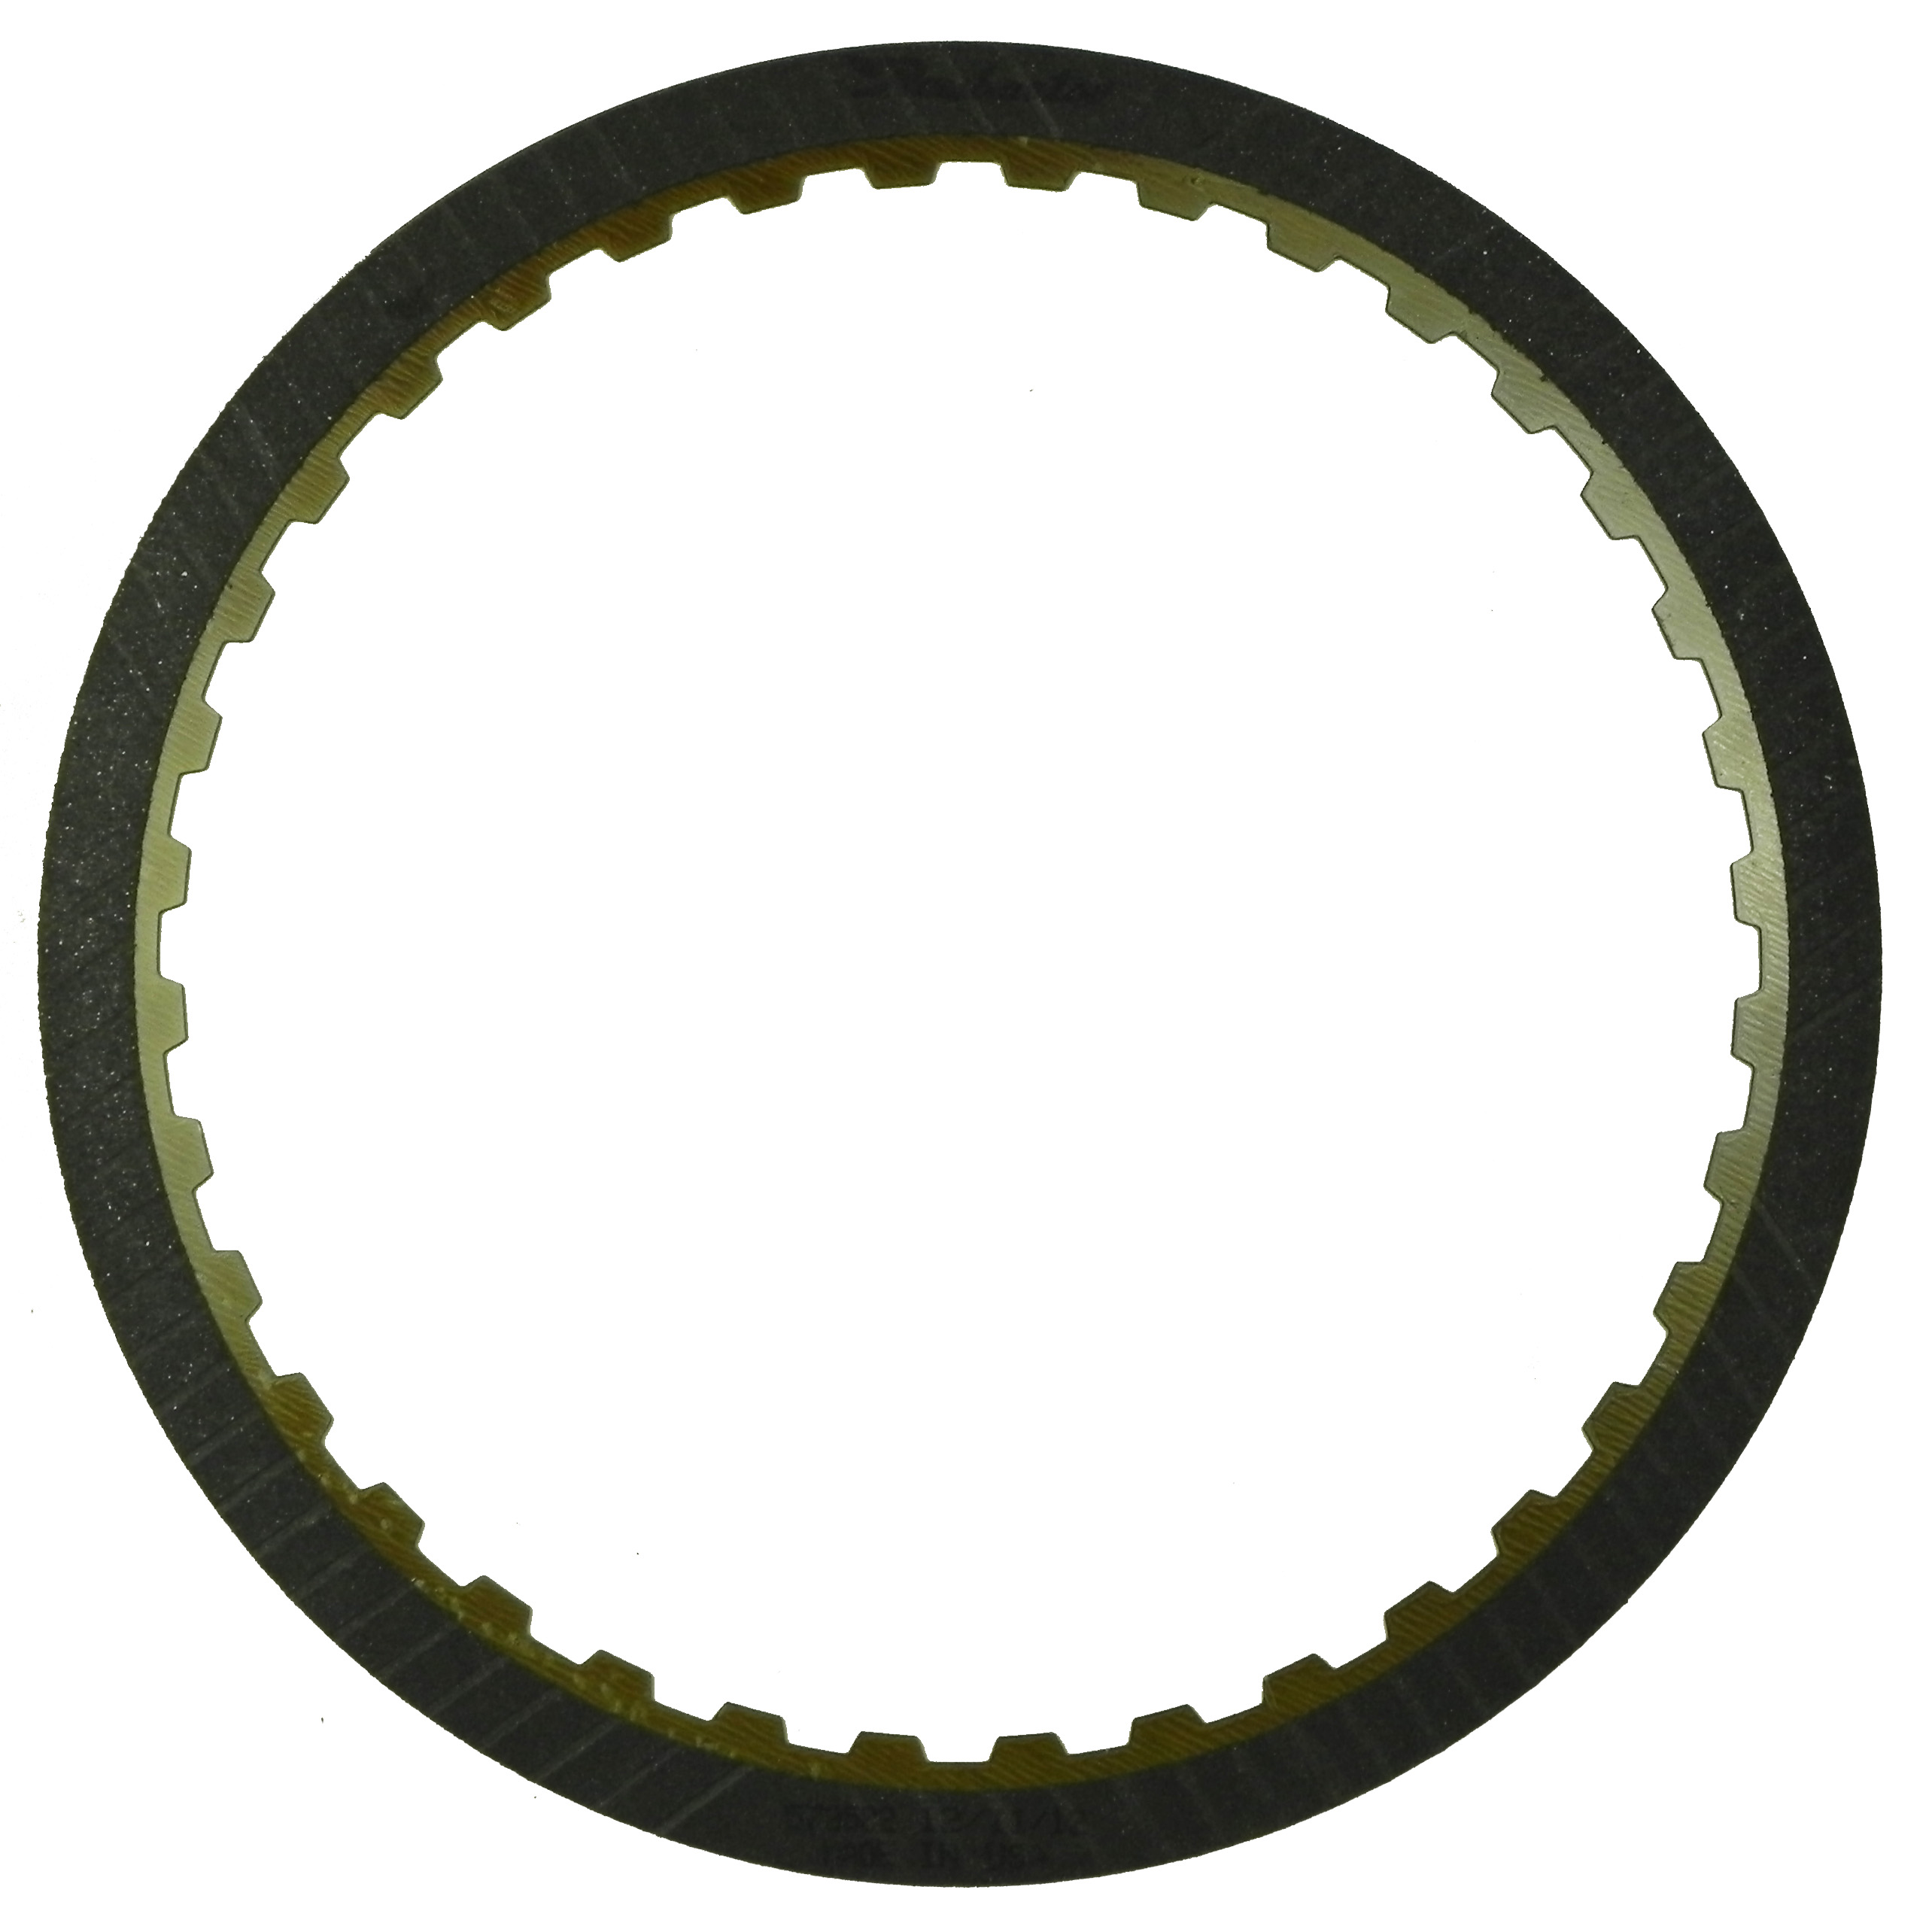 R573582 | 2008-ON Friction Clutch Plate High Energy Front Brake High Energy